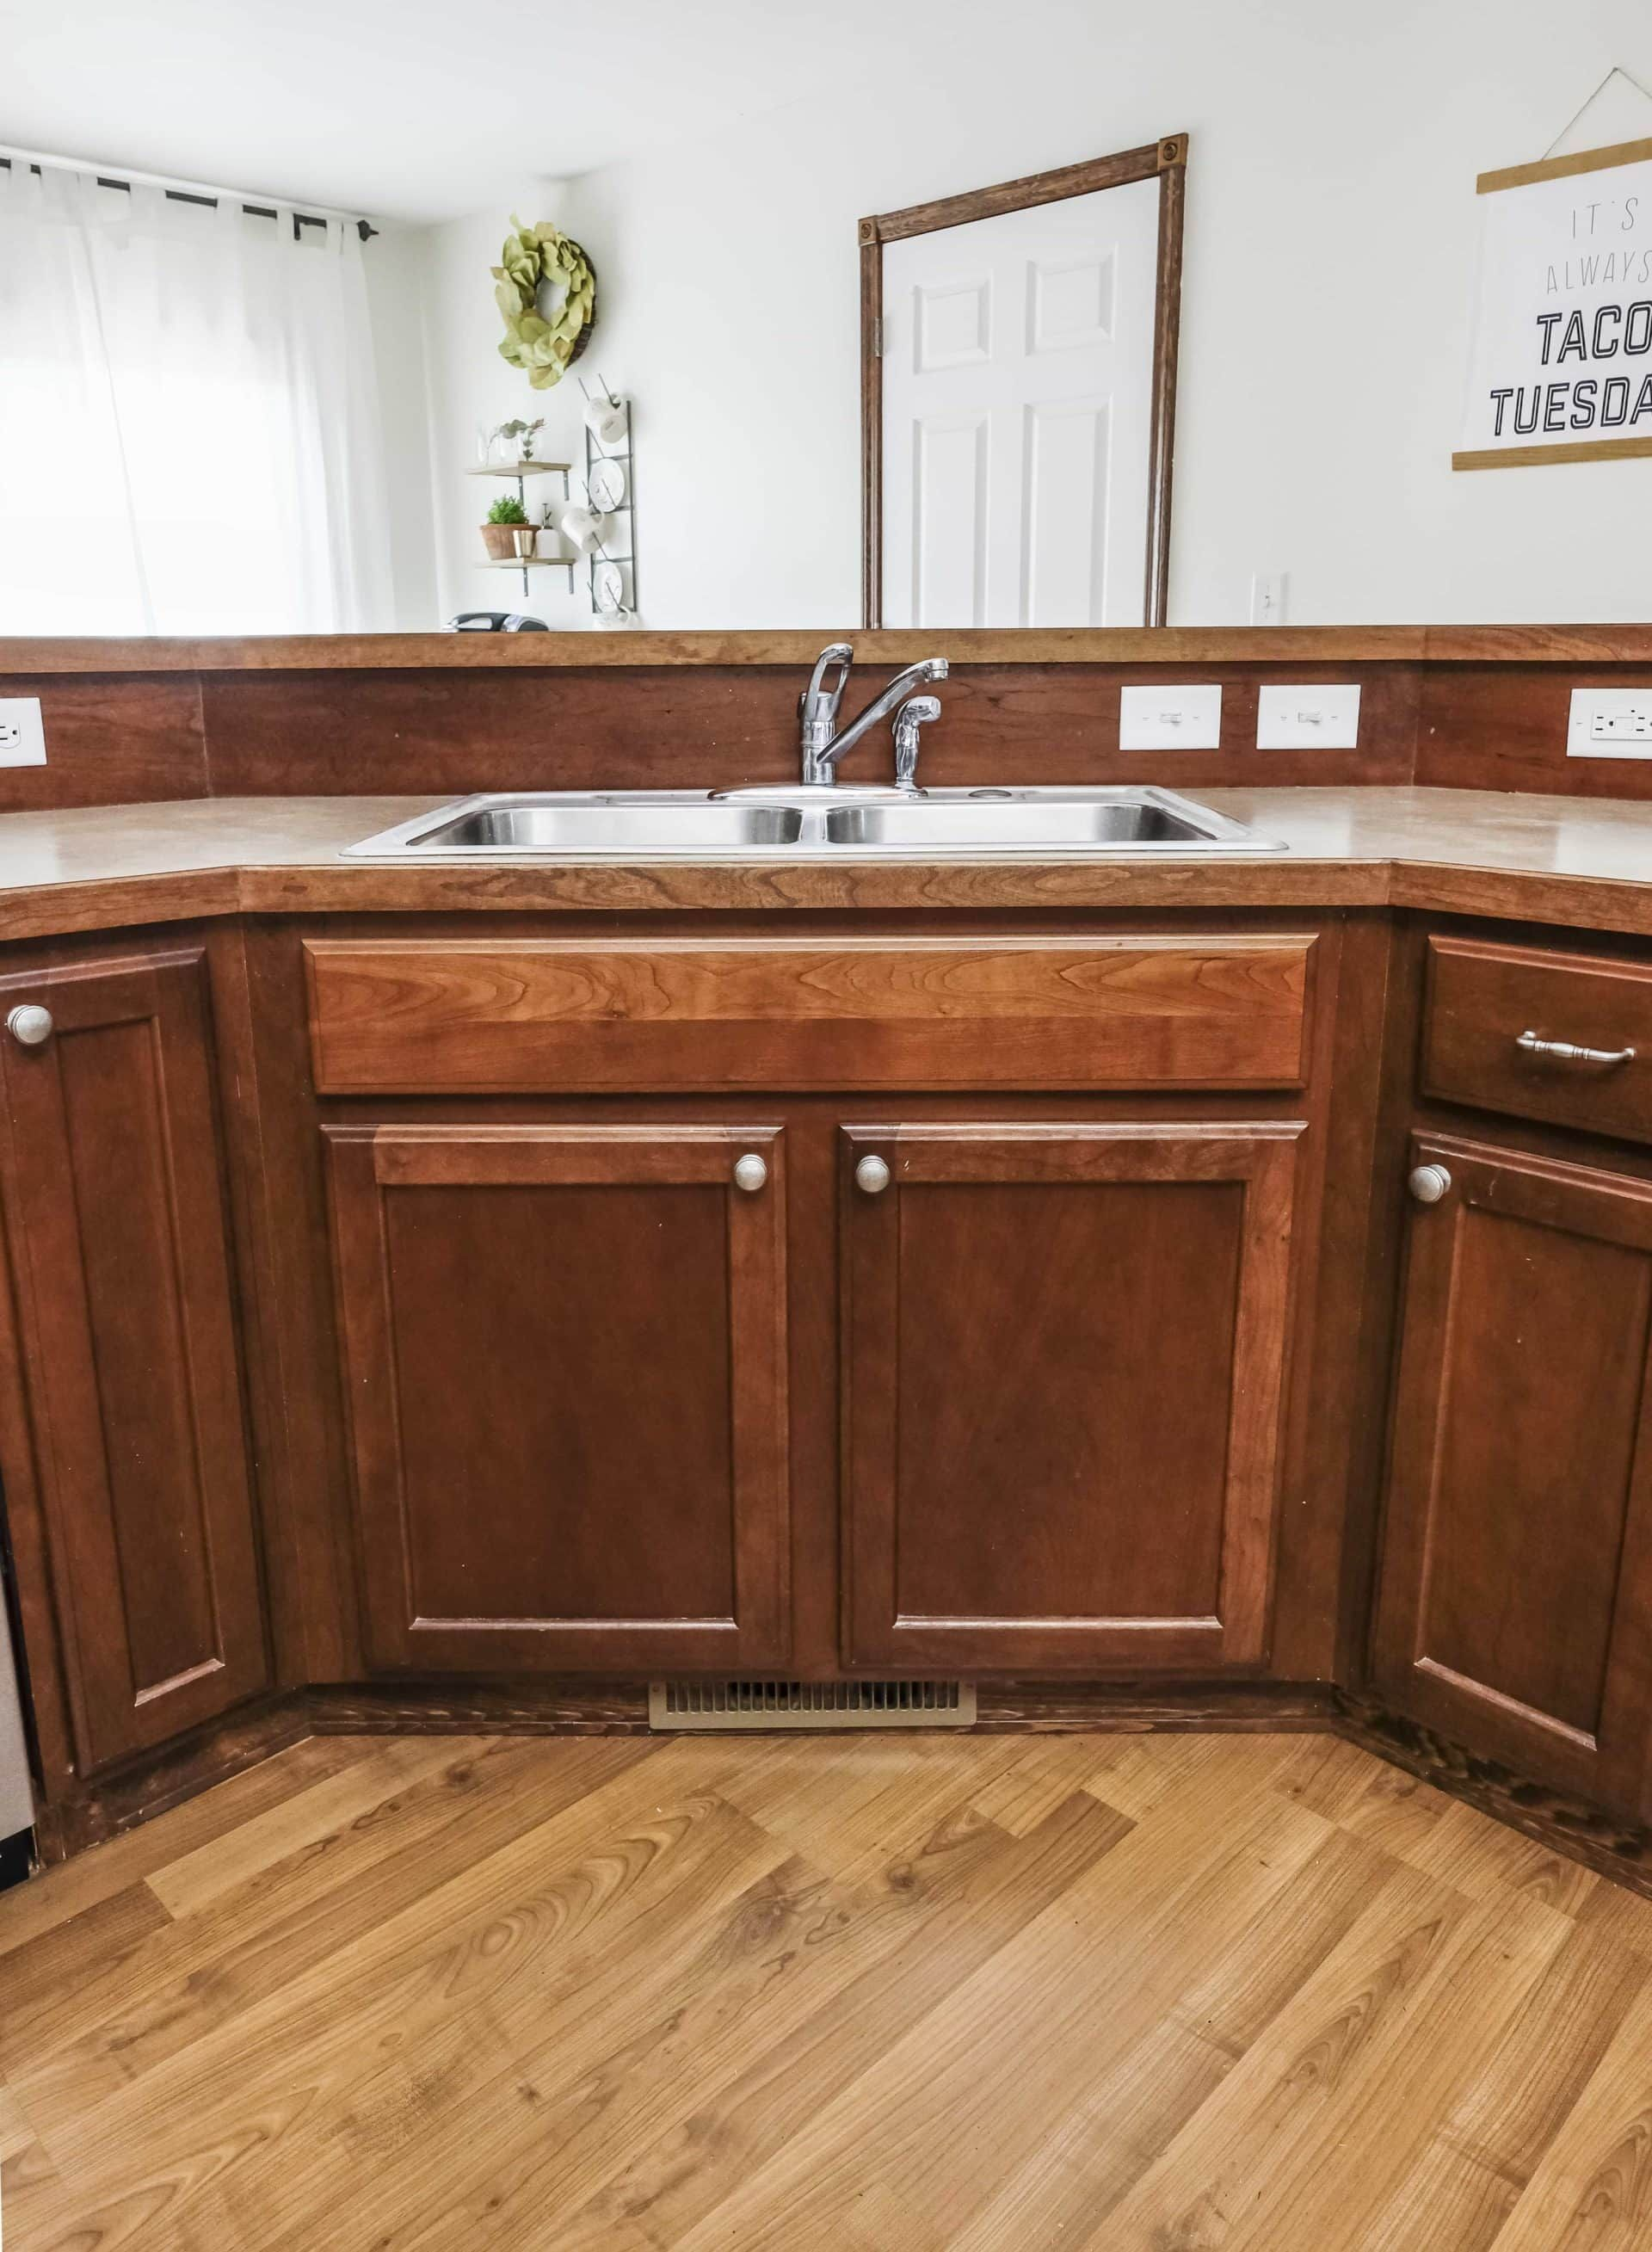 Diy farmhouse sink installation in 2020 with images